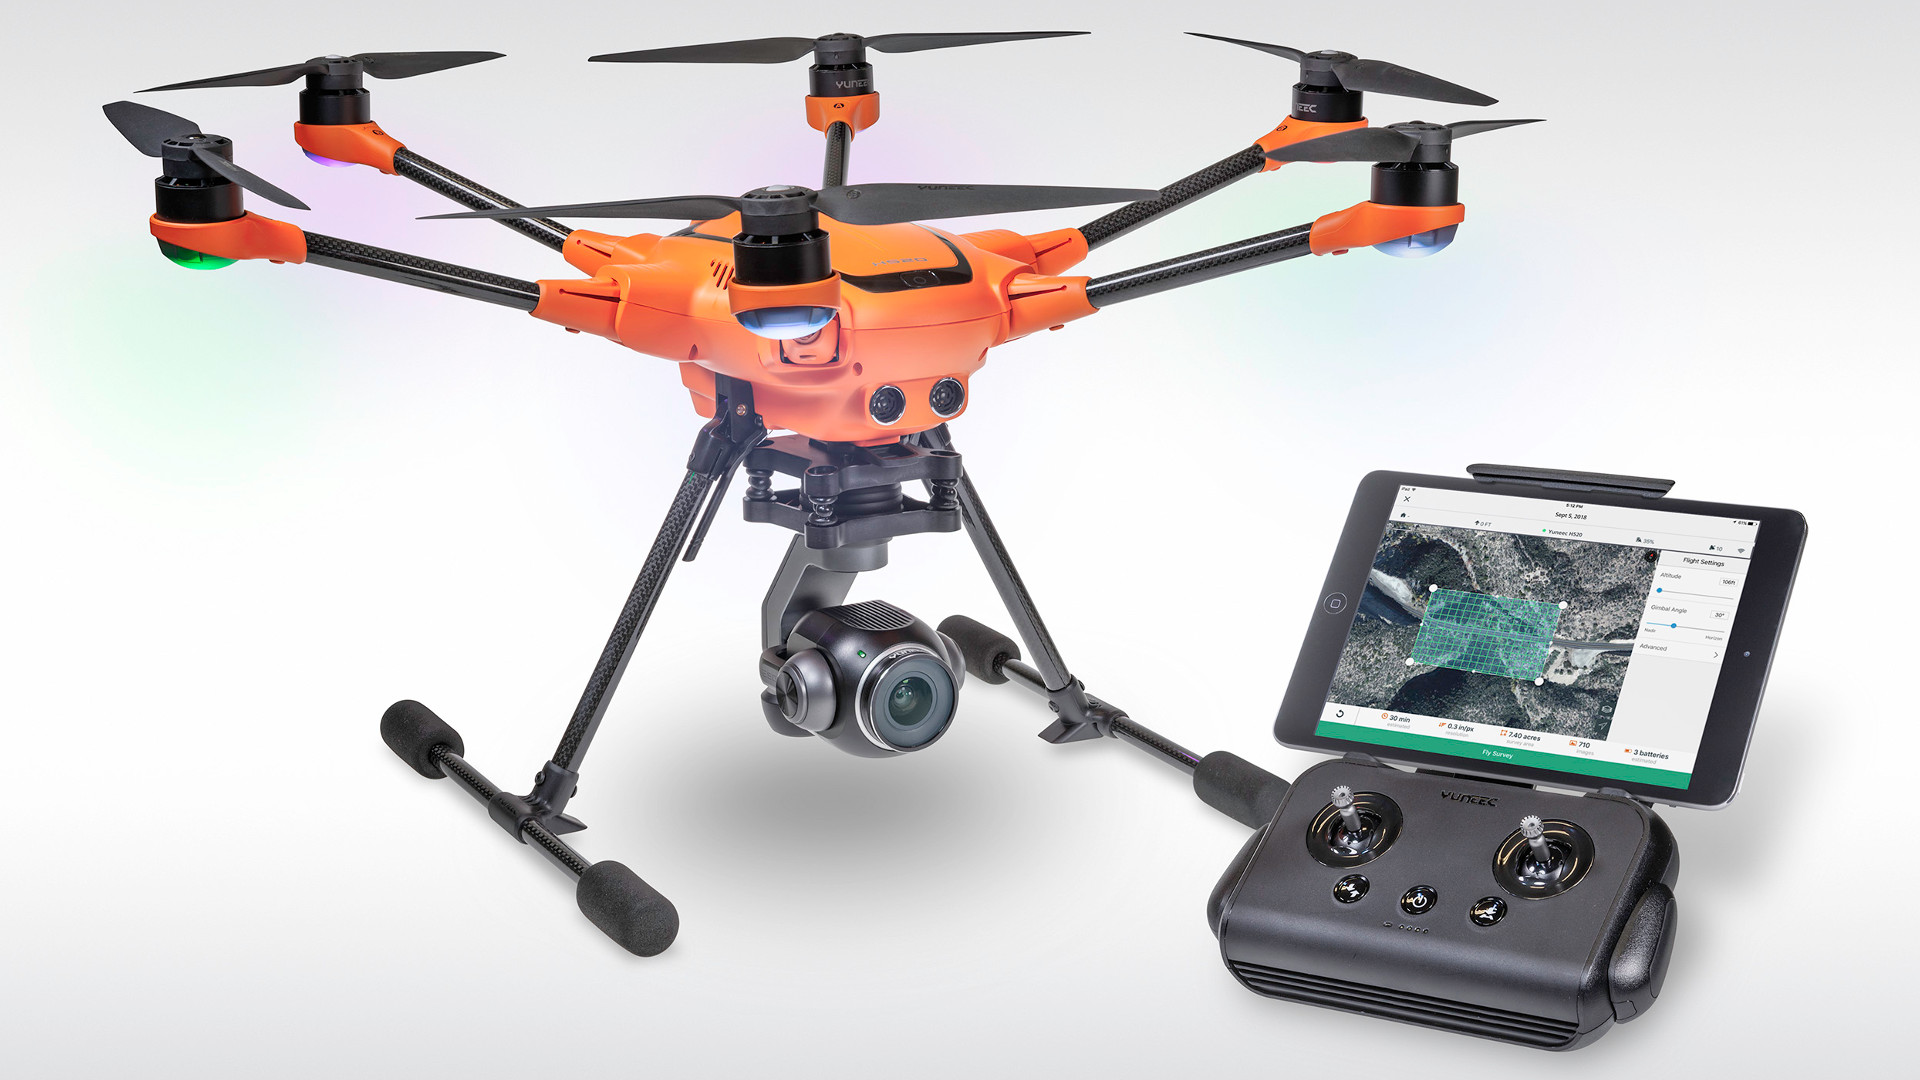 Yuneec and 3DR partnership with H520 commercial drone at interdrone 2018